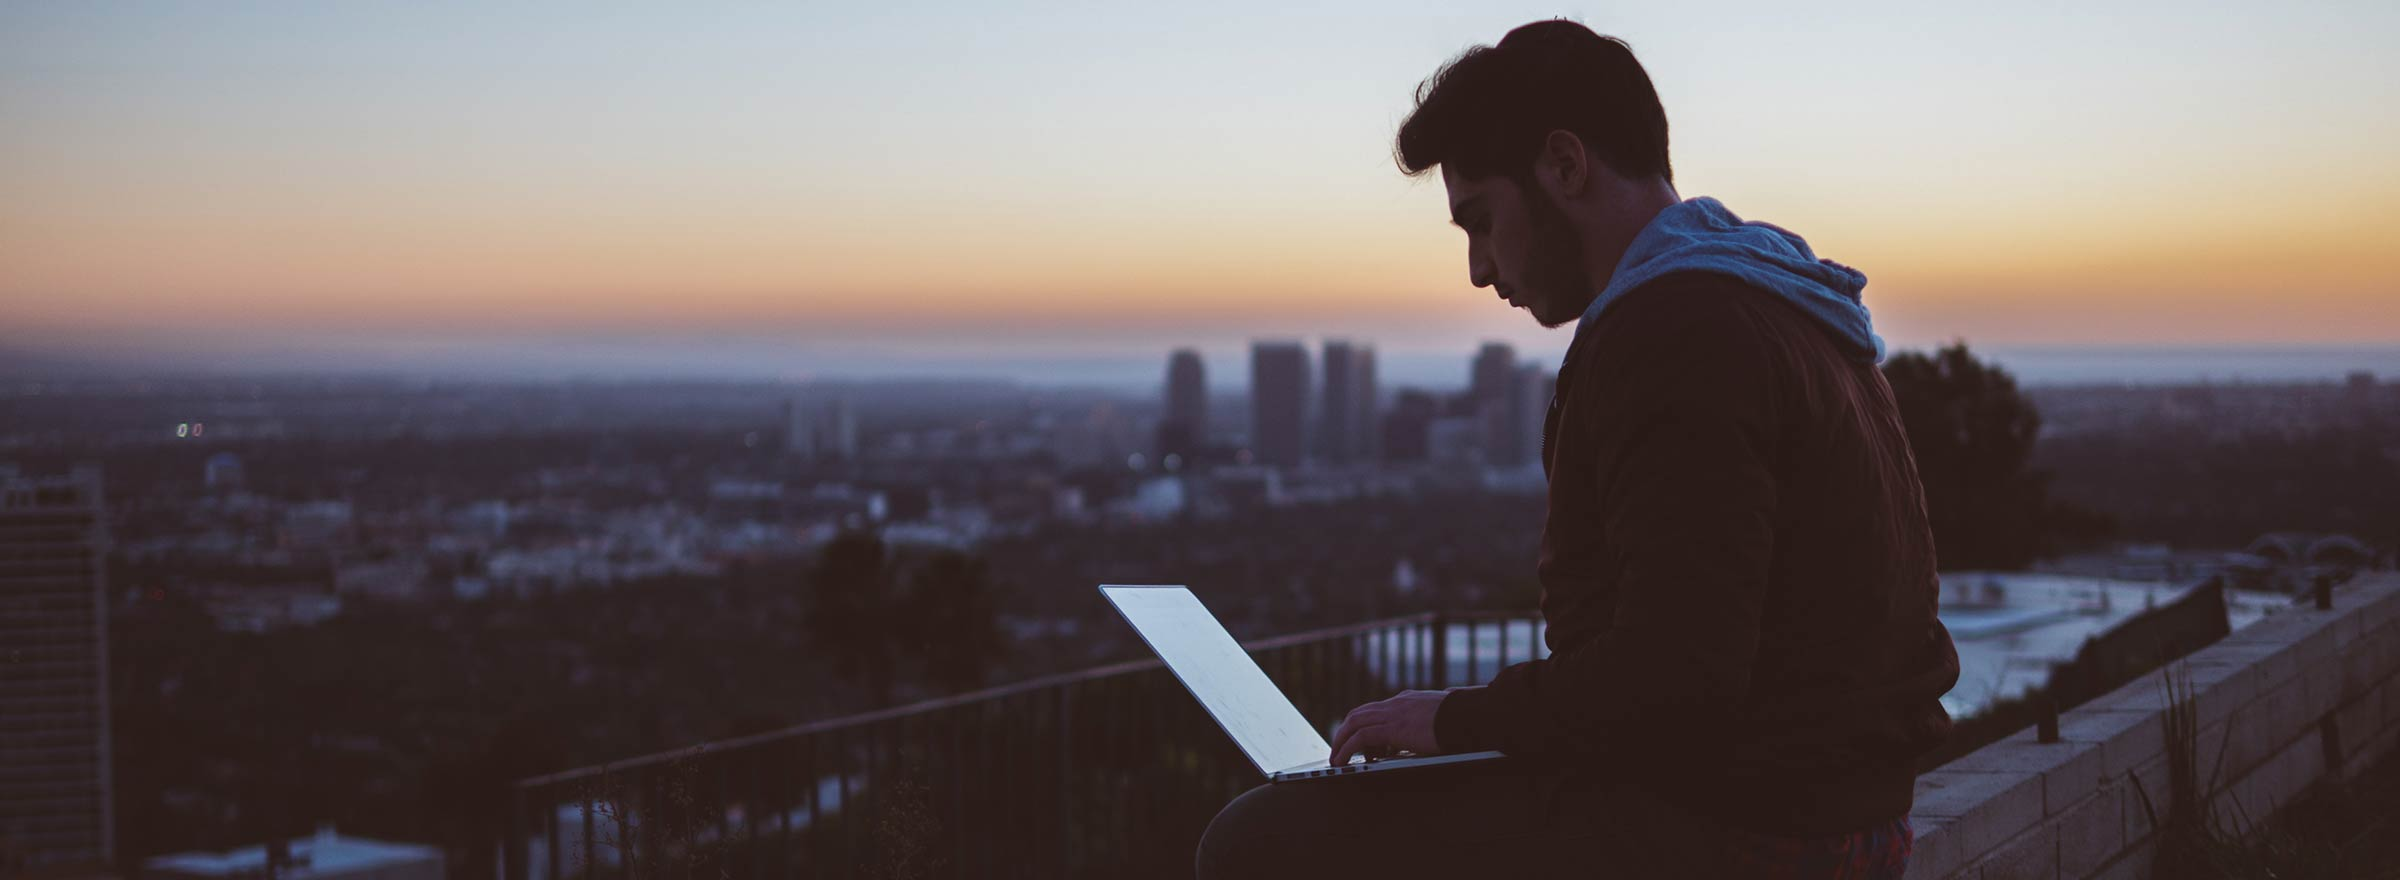 A young man sitting on a rooftop at sunset, typing on his laptop, representing data privacy concerns for nonprofits